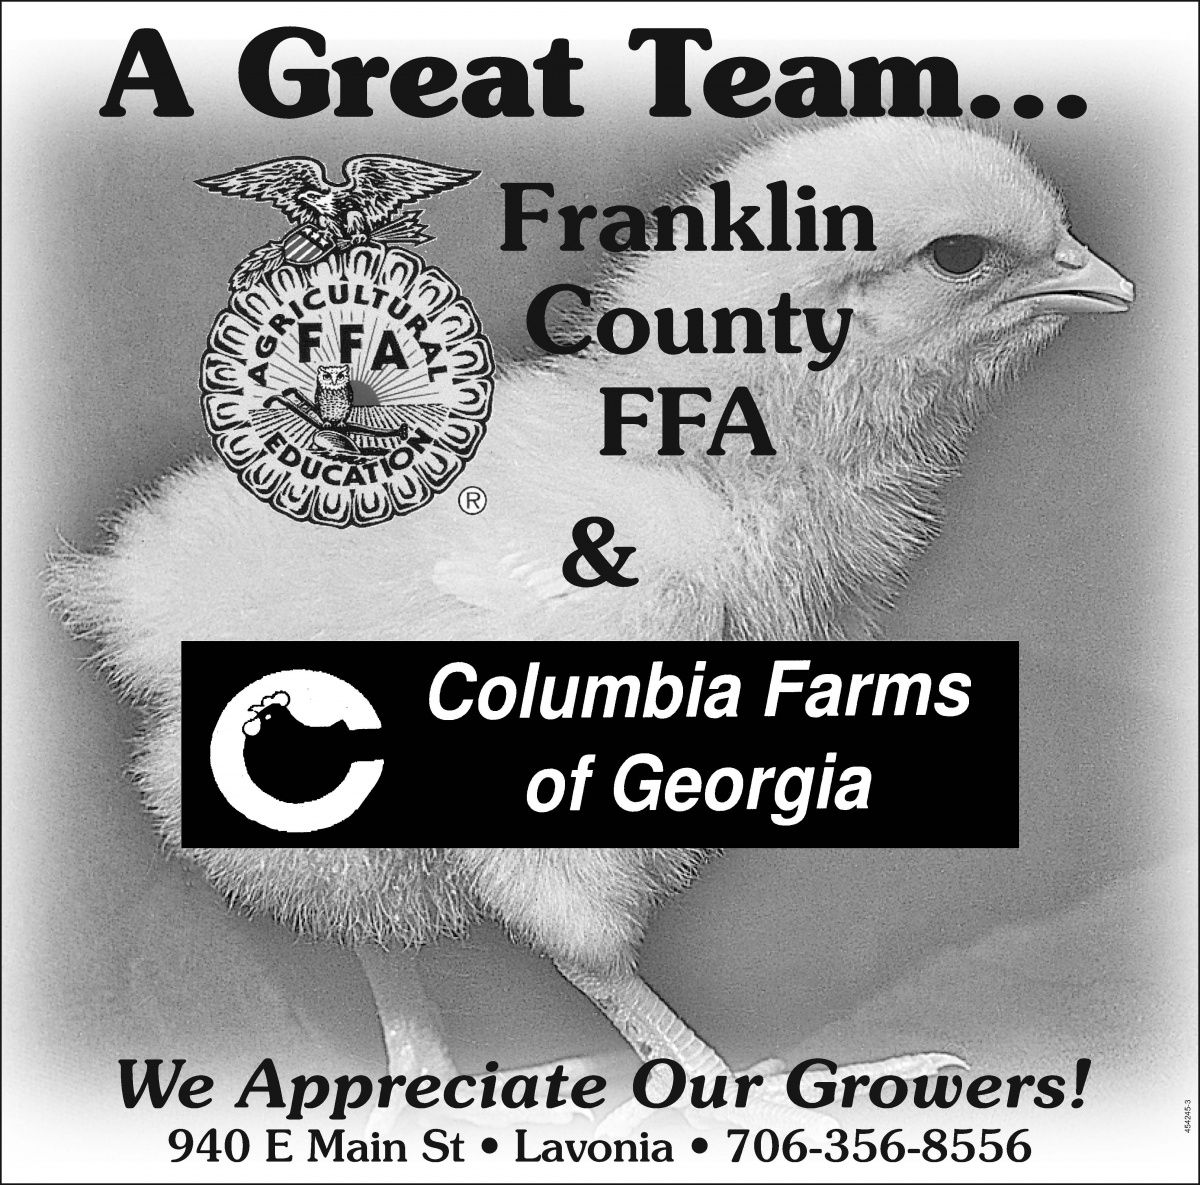 Franklin County FFA & Columbia Farms of Georgia    We Appreciate Our Growers! | House of Raeford - Columbia Farms of Georgia - Lavonia, GA #georgia #ElbertonGA #shoplocal #localGA